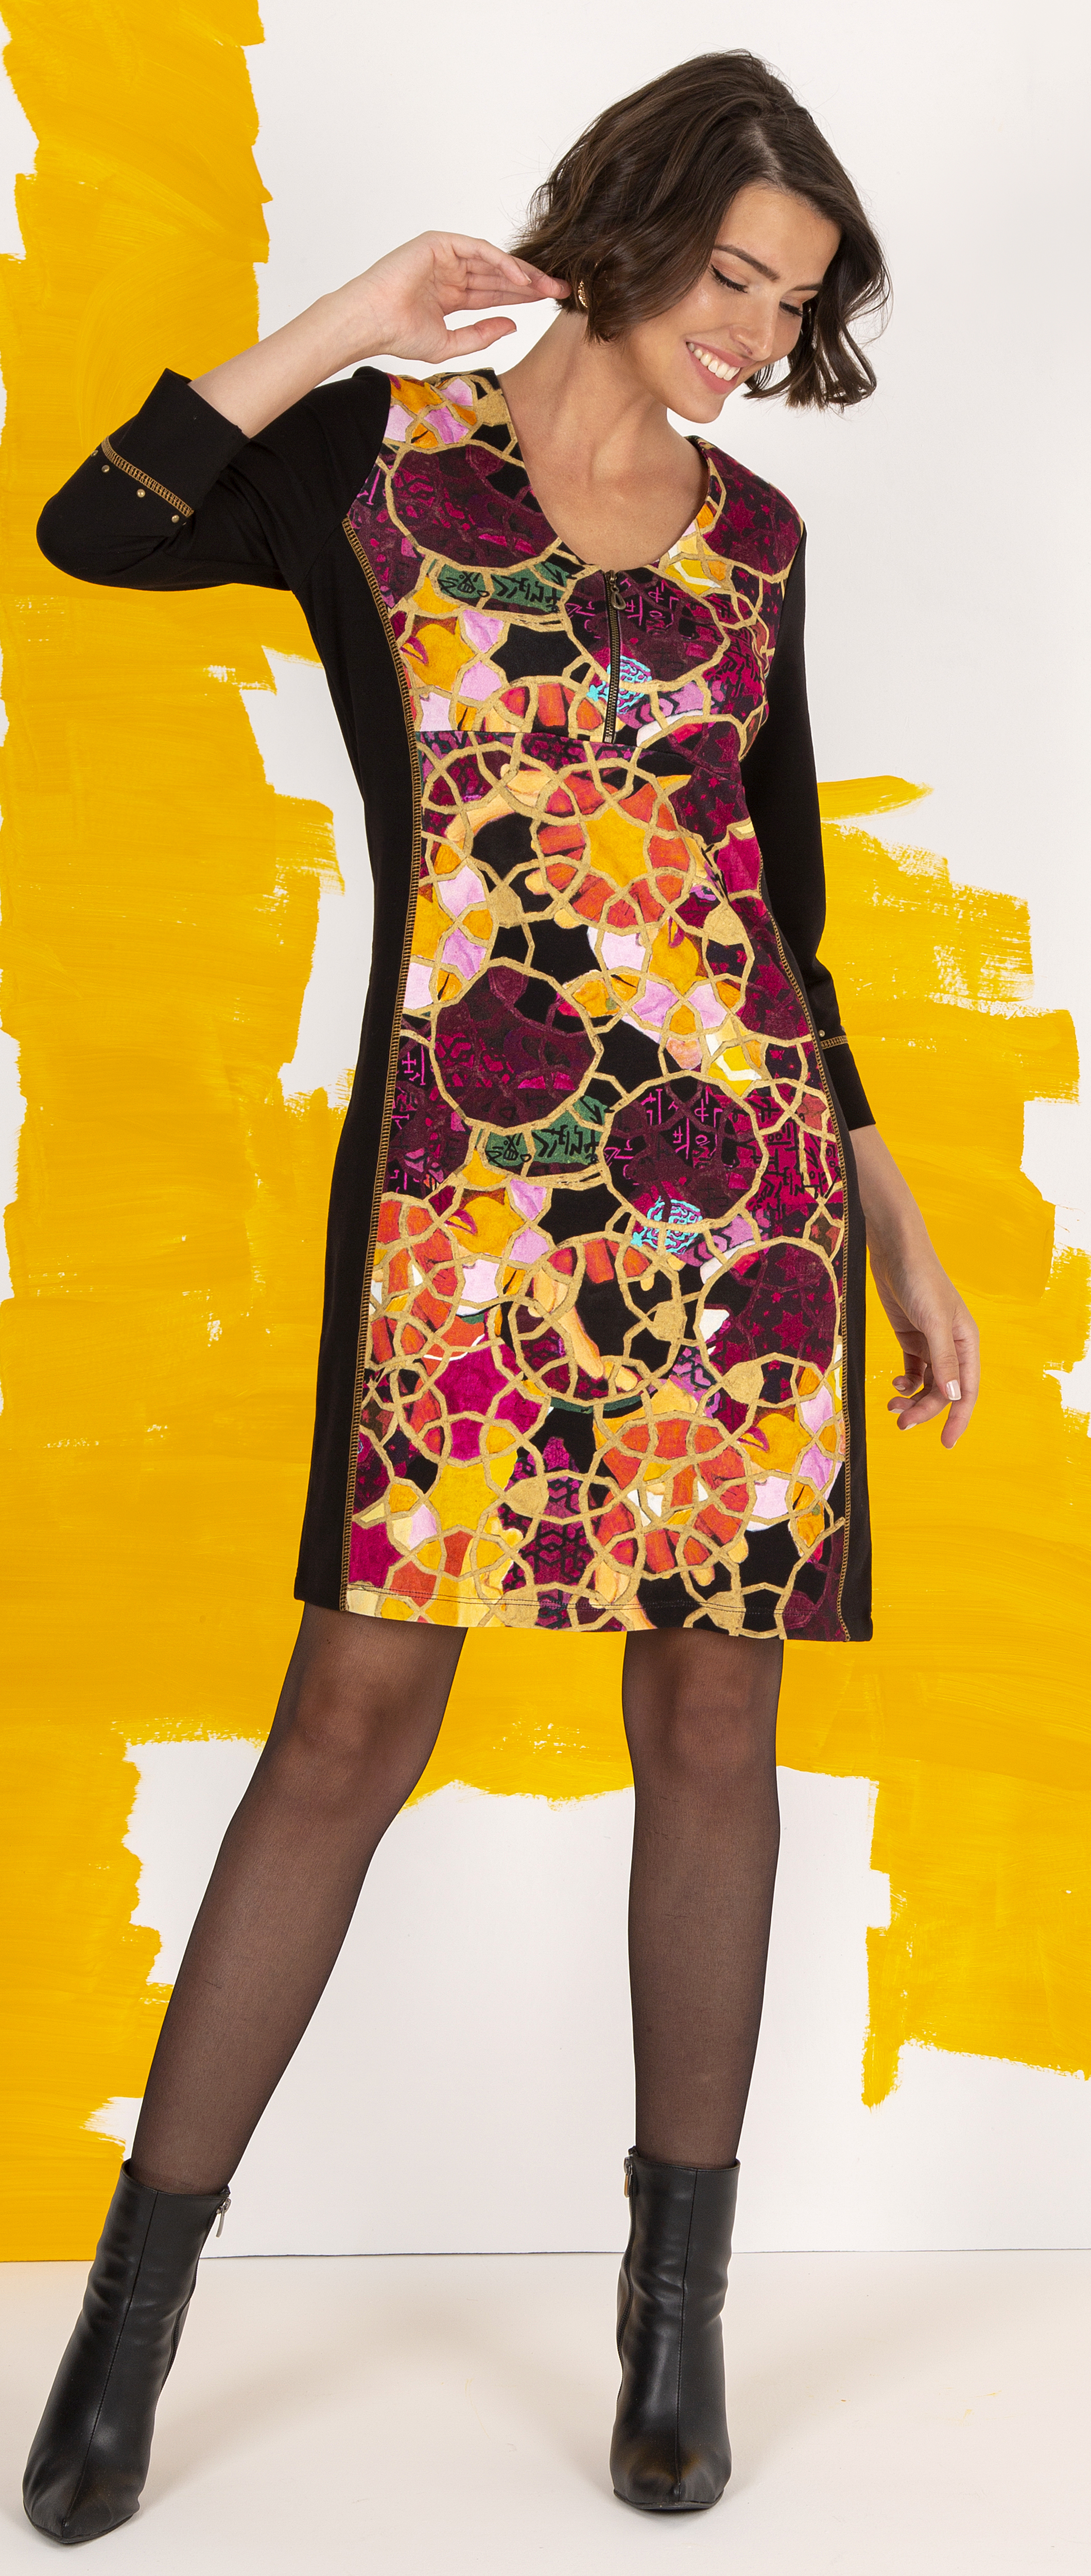 Simply Art Dolcezza: Blessings With Rings Abstract Art Dress Dolcezza_SimplyArt_71634